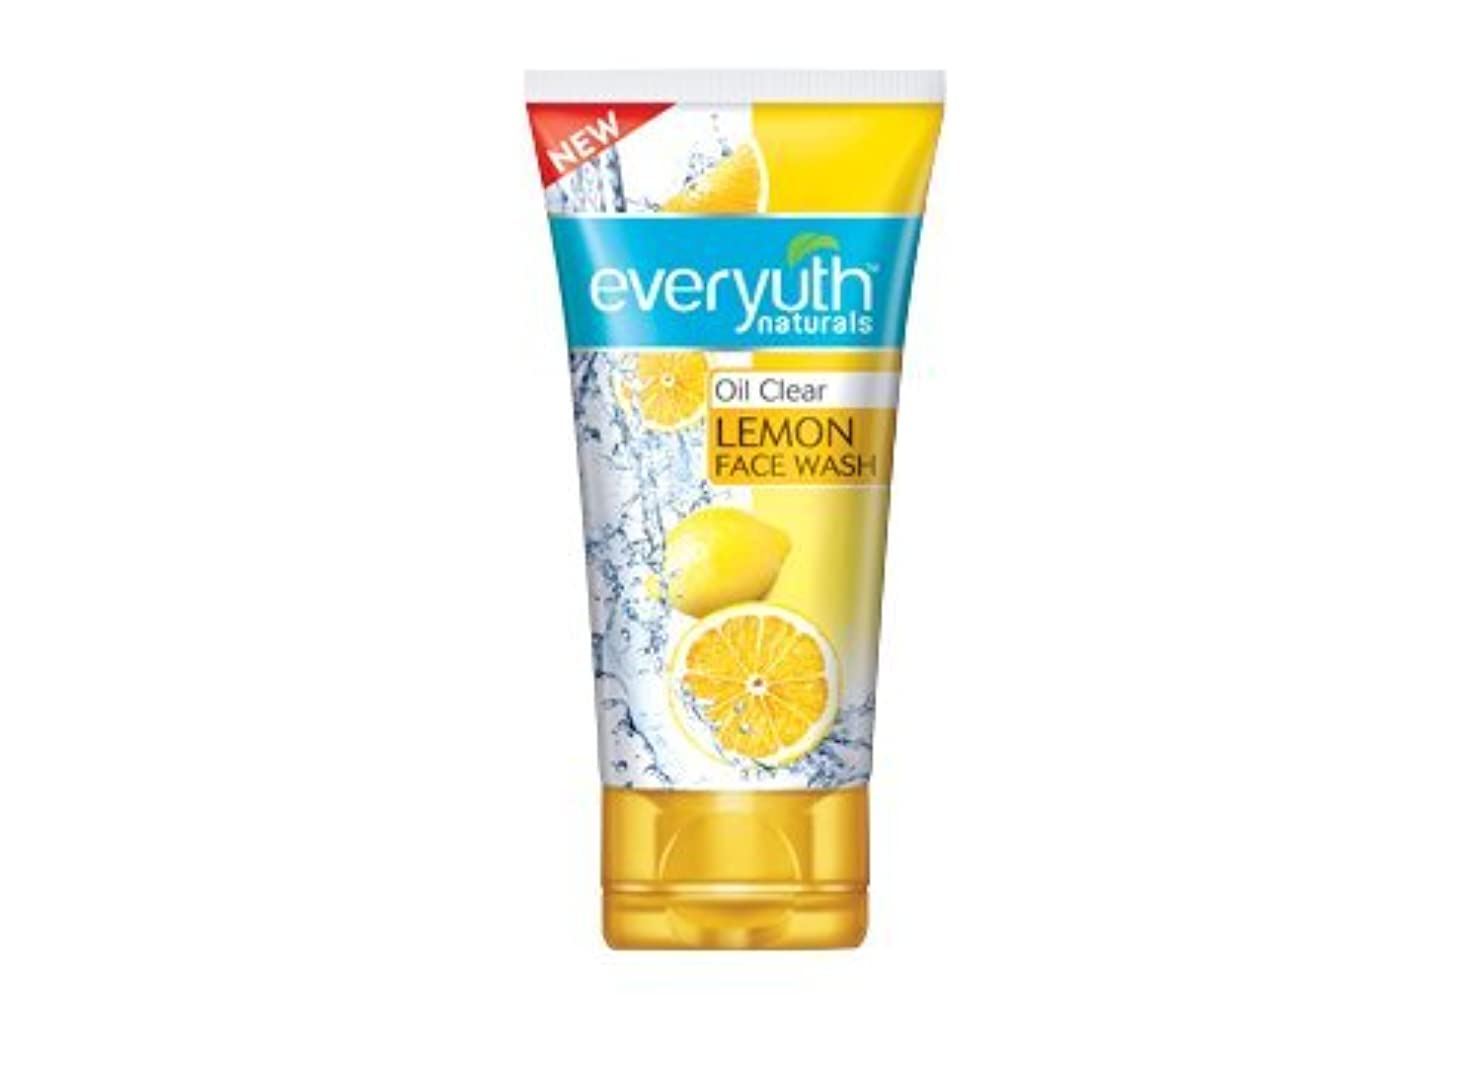 構造的ペチコート所有者Everyuth Naturals Oil Clear Lemon Face Wash 50Gm (1 Pack)